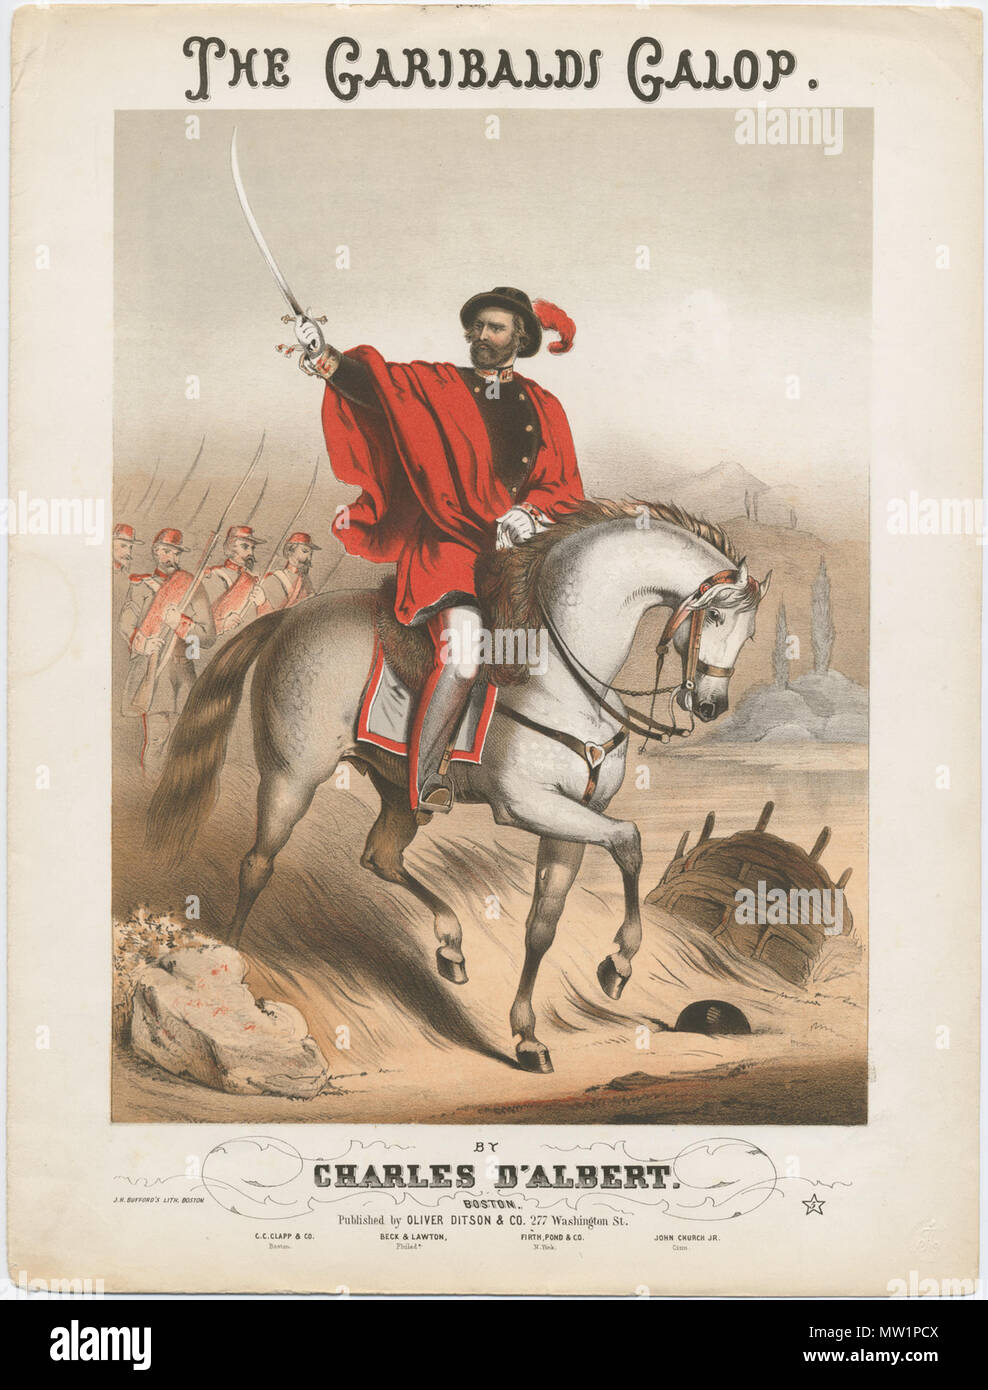 . English: Music cover sheet: Garibaldi on horseback, directed to right, with head turned to look to left, wearing a plumed hat and red drape around his shoulders over a double-breasted black coat, his right arm outstretched, holding up a sword in his hand, followed by a group of armed soldiers at left; basket at right, a lake or river behind, trees on the opposite shore, and hills in the distance; outer border surrounding image. Lithograph, printed in colour, with additional hand-colouring . 1841-1863 (circa). Print made by John Brandard 595 The Garibaldi Galop. - Stock Image